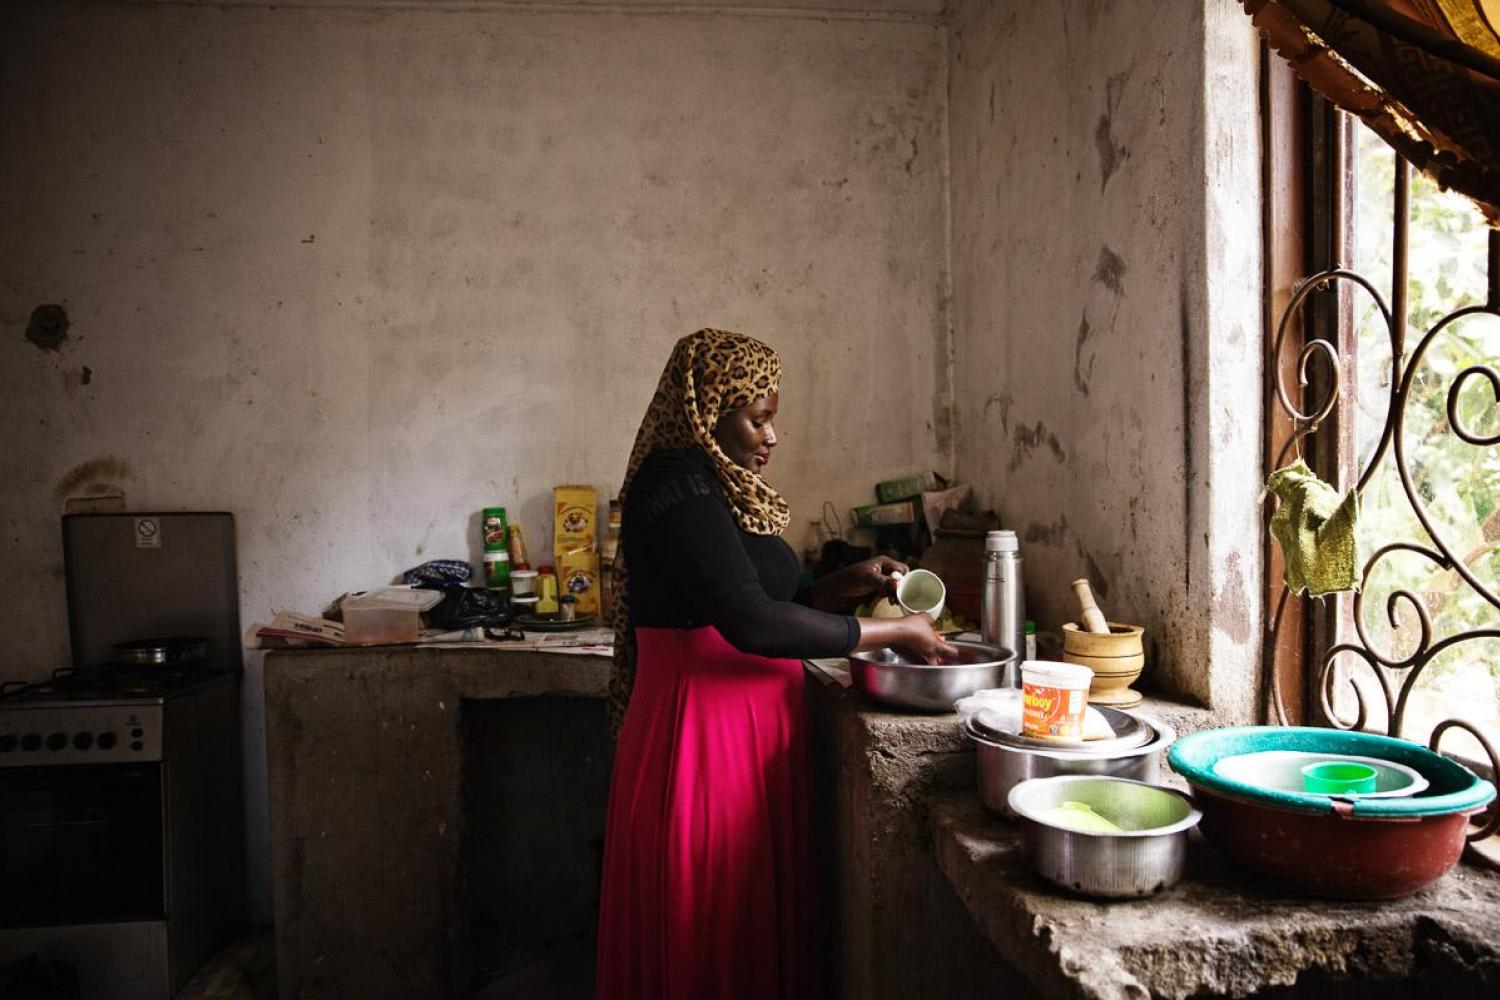 © UNDP, Stories of Survivors of Violent Extremism in Sub-Saharan Africa